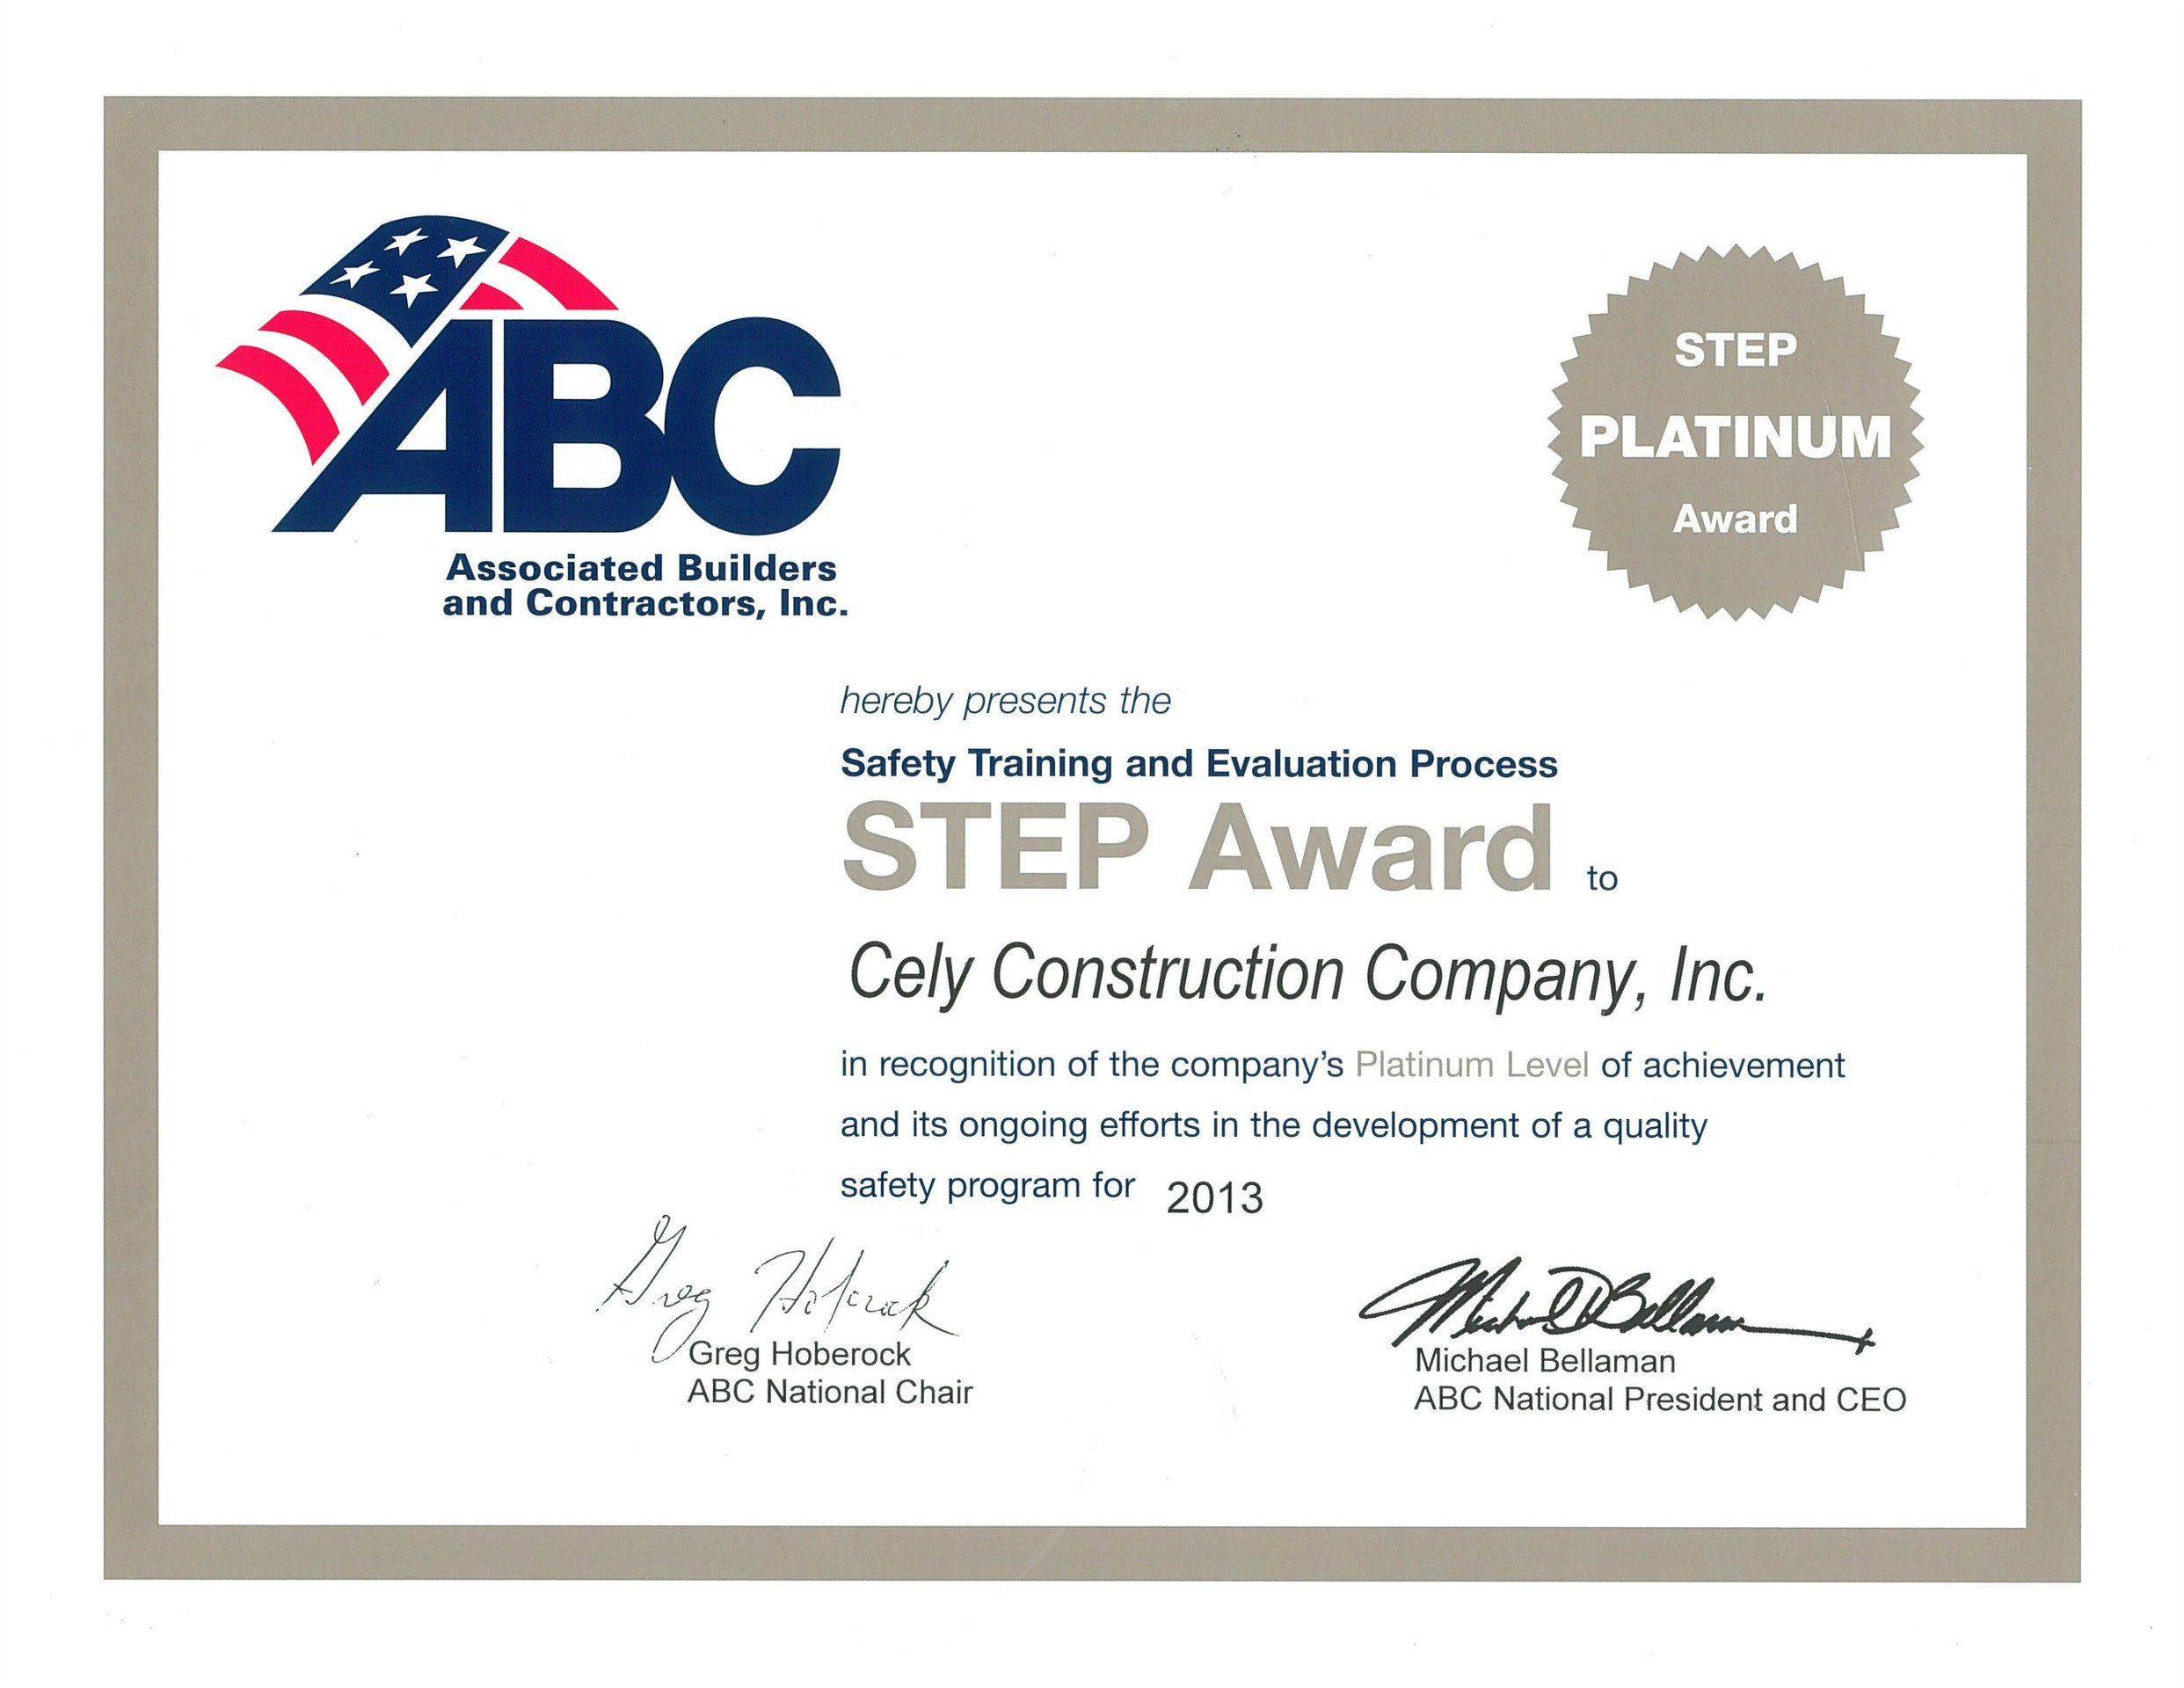 General Contractor - Associated Builders and Contractors, Inc. - Safety Training and Evaluation Process (STEP) Award 2013